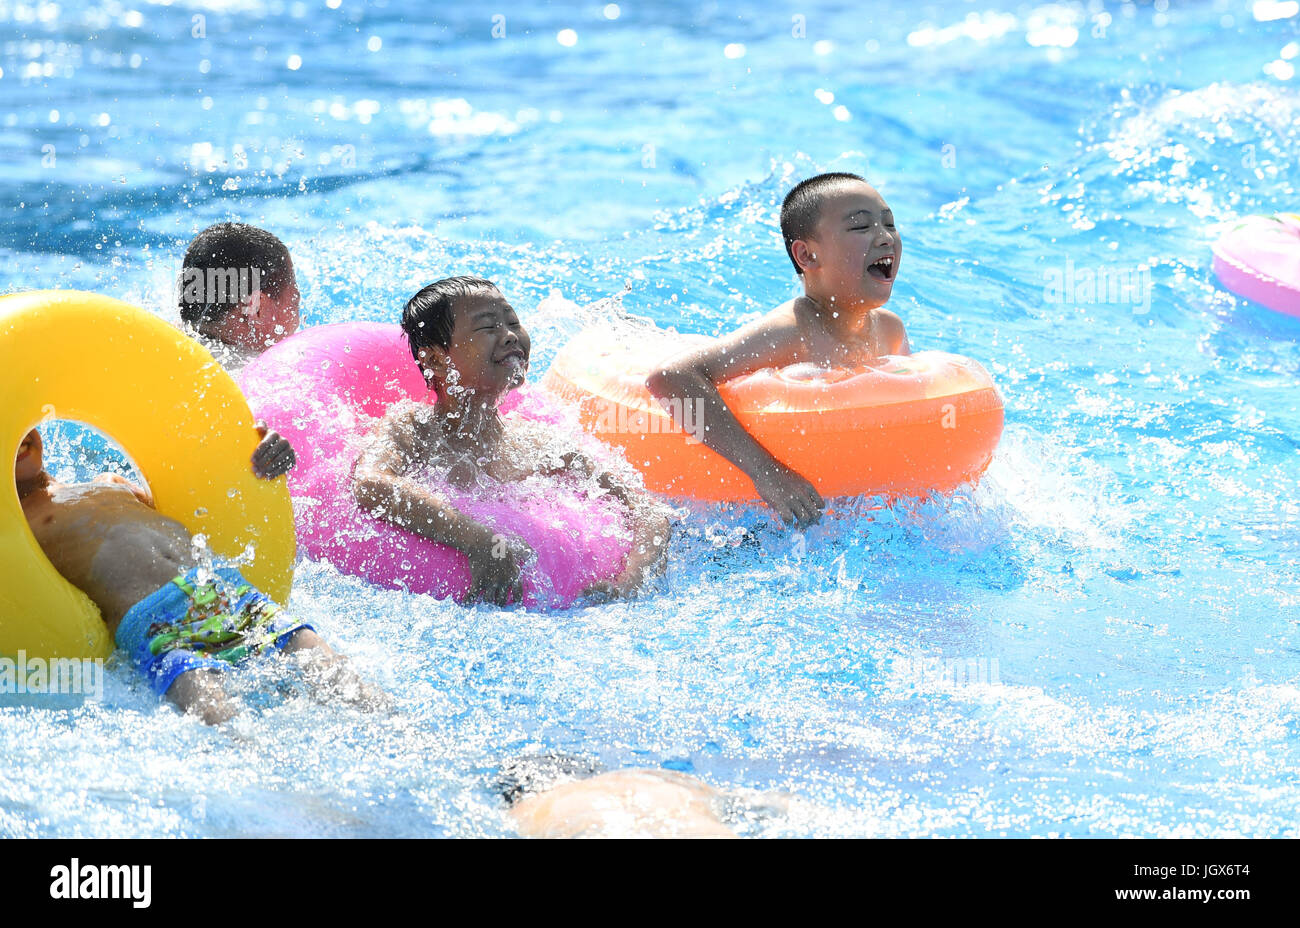 Chongqing, China. 11th Jul, 2017. Kids played in water to keep cool in a water park in Chongqing, July 11, 2017. - Stock Image